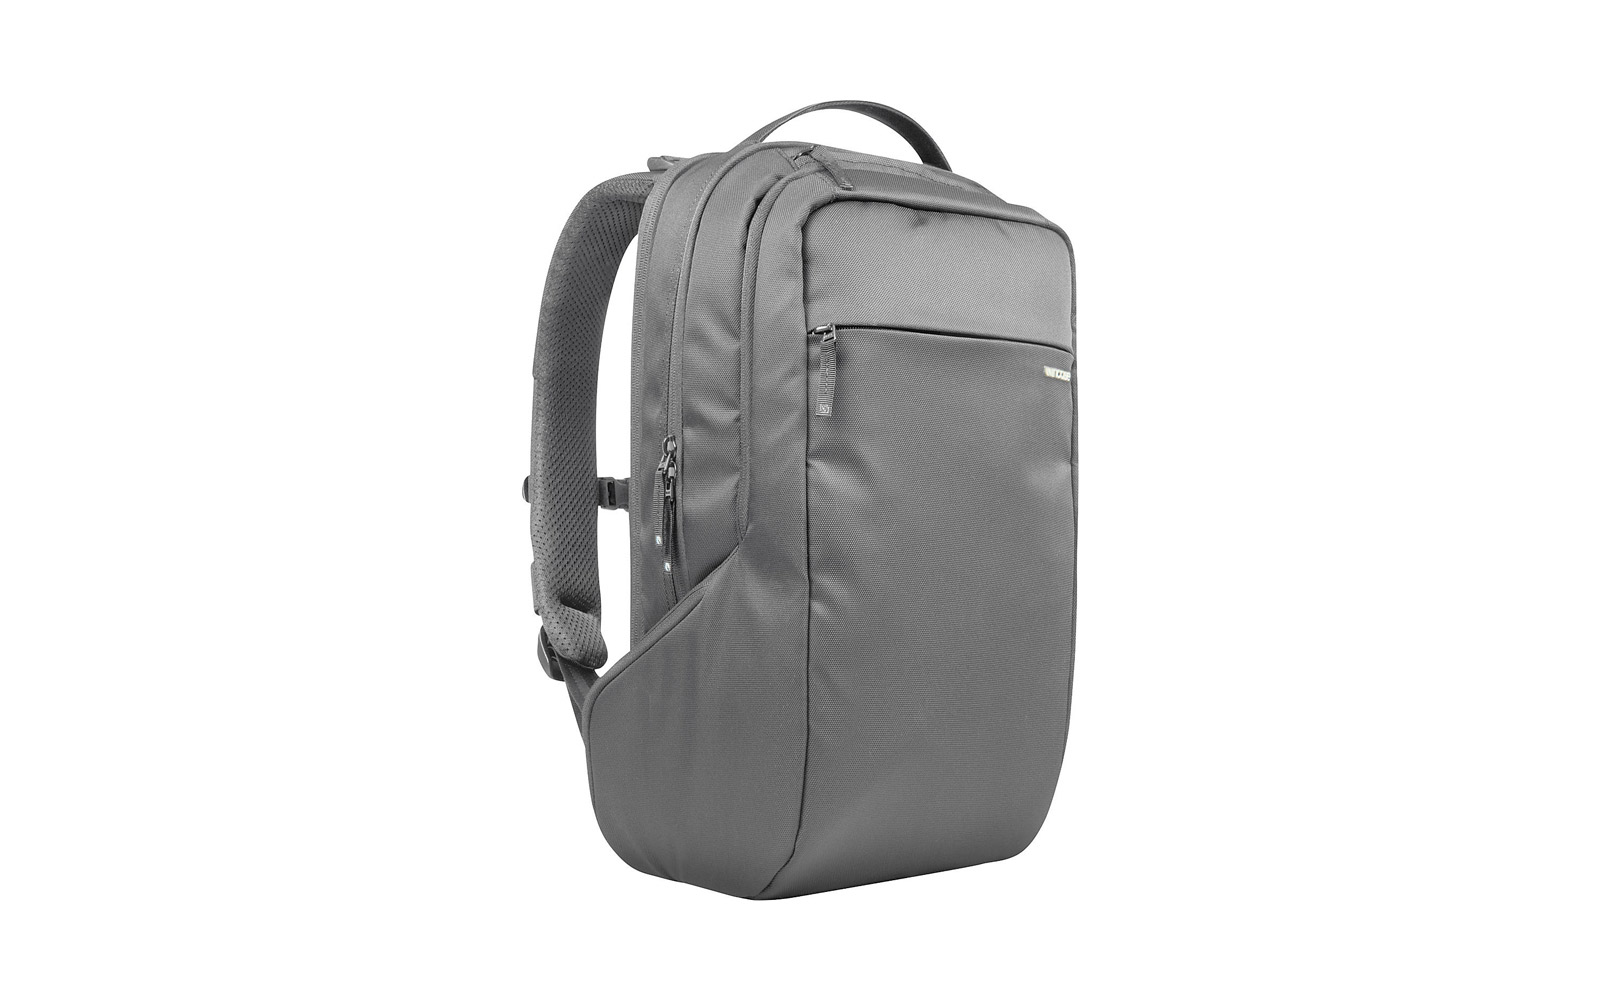 incase 15-inch laptop backpack